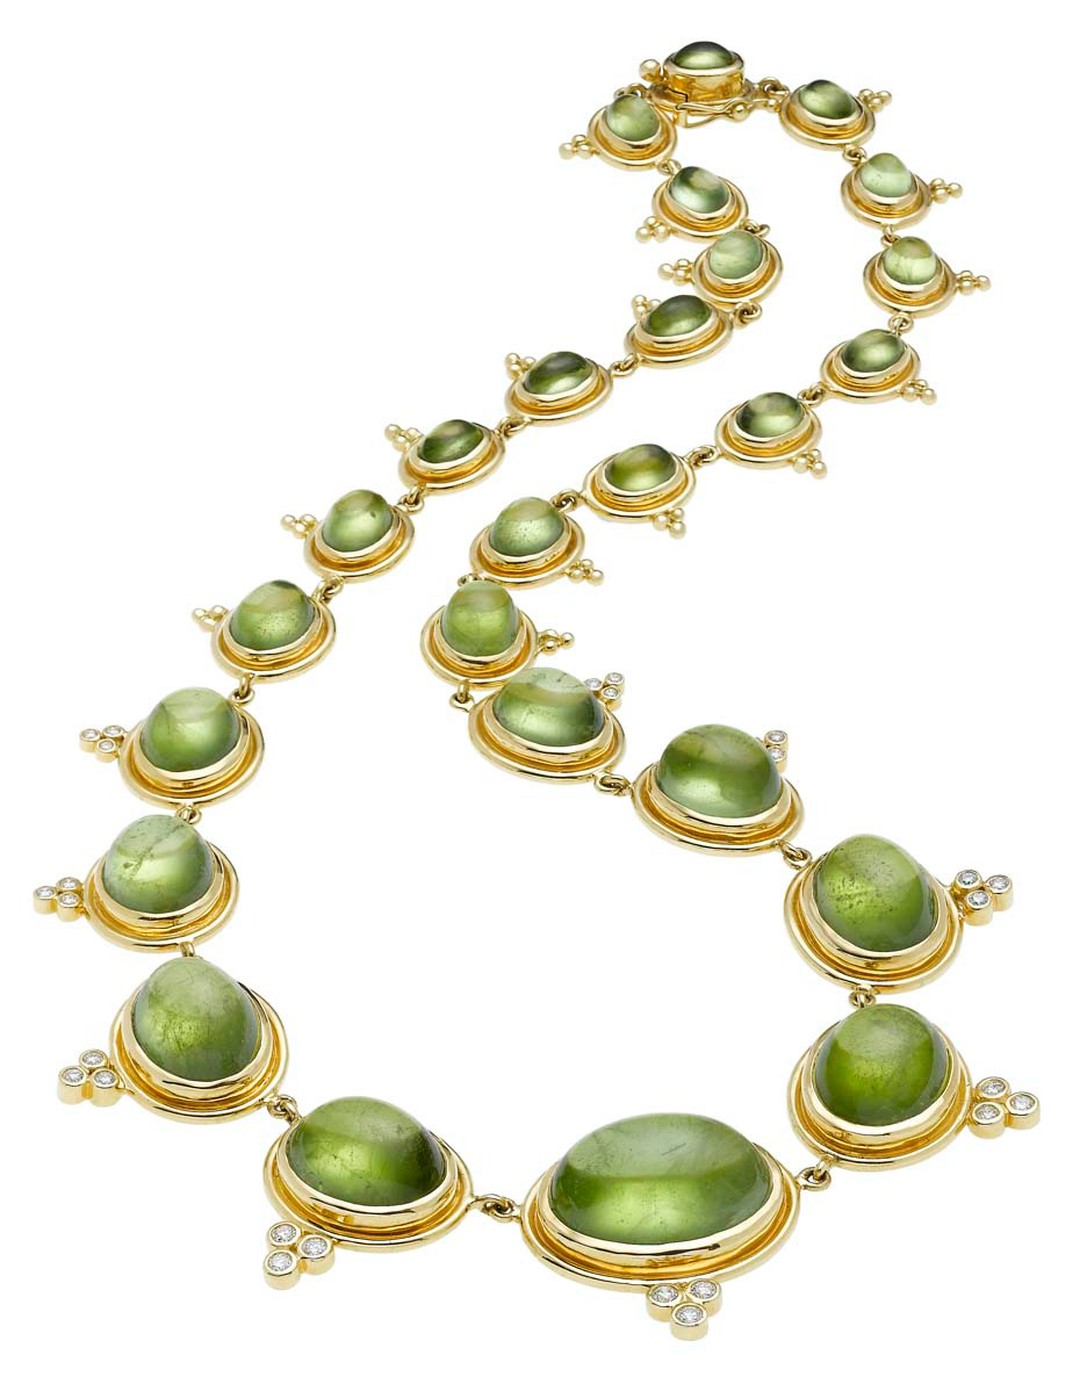 Temple St. Clair Classic Graduated gold necklace with cabochon peridot and diamond.